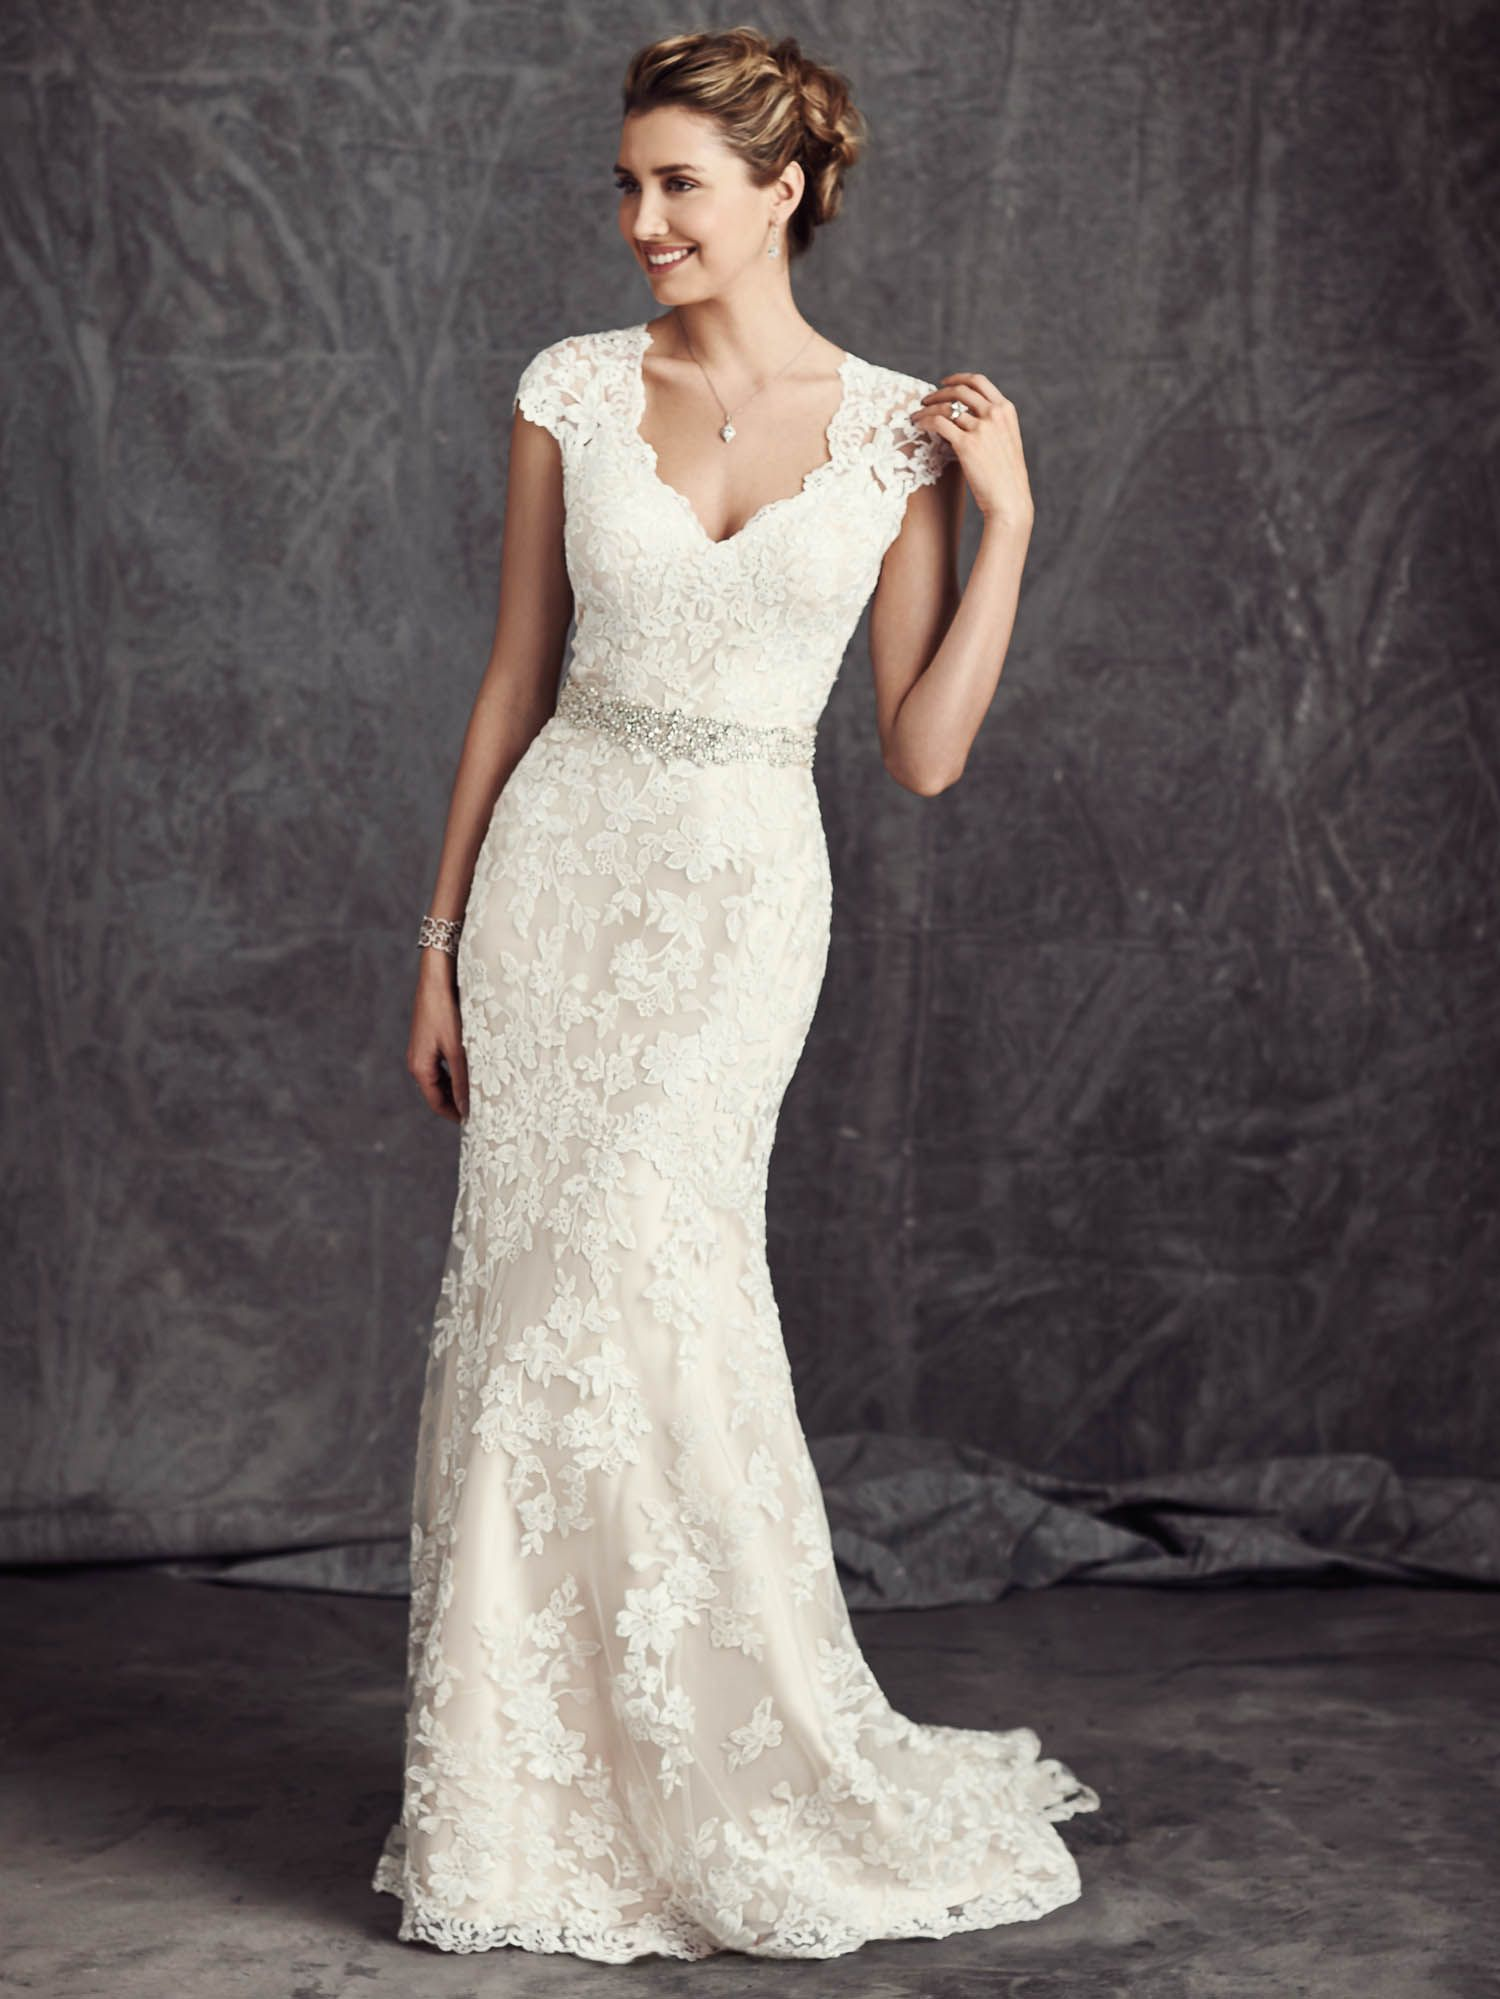 Ella Rosa Style Be277 Sheath Off The Shoulder Dropped Waist Sweep Train Material Short Sleeve Wedding Dress Wedding Dresses Sheath Wedding Dress Lace [ 1999 x 1500 Pixel ]